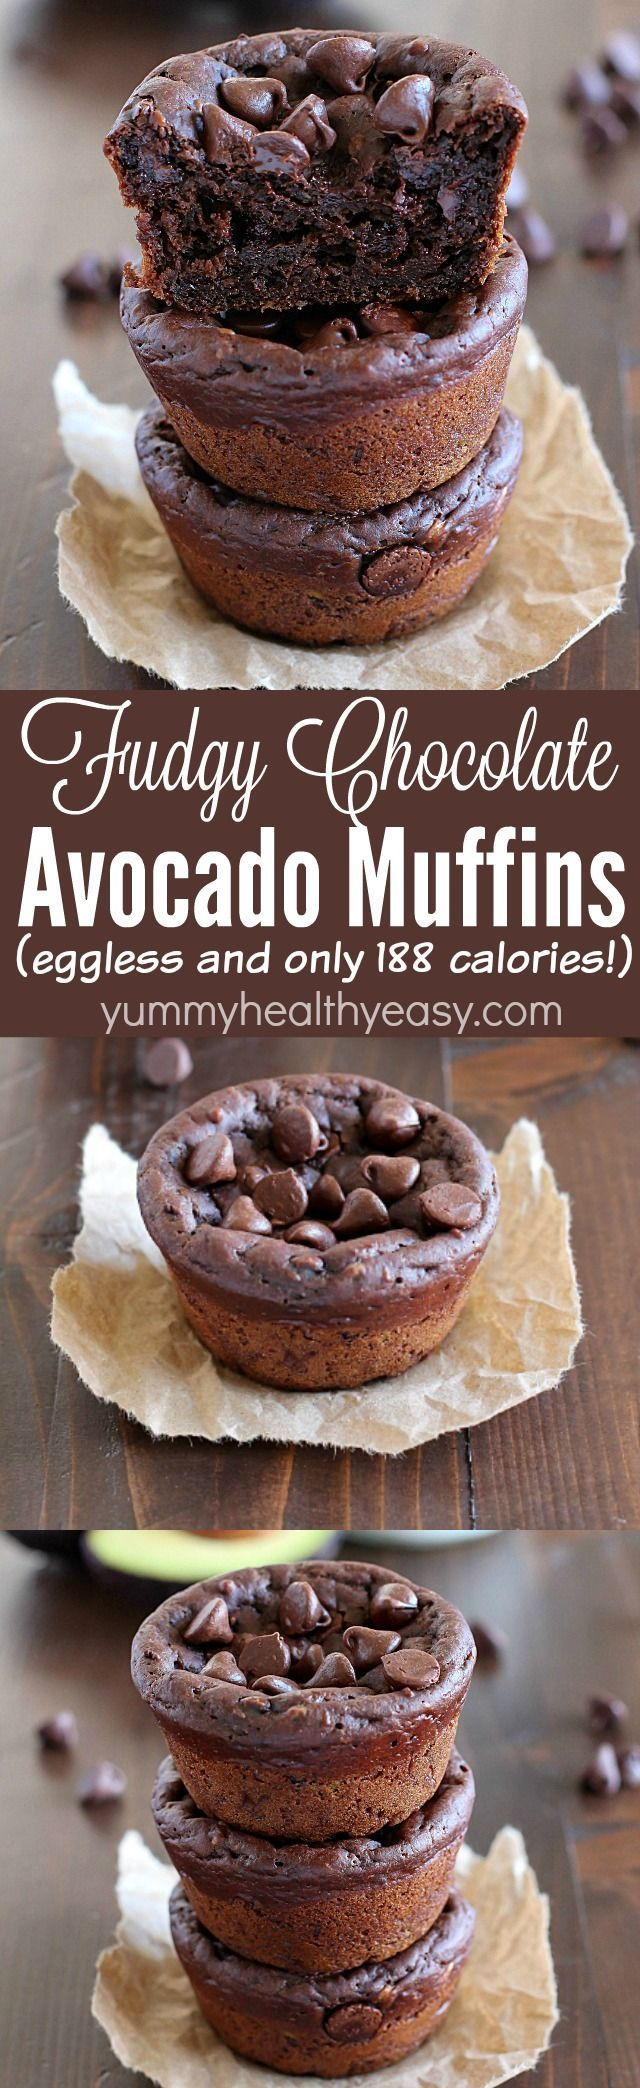 Muffins. With Chocolate. That are fudgy. Yessiree! Fudgy Chocolate Avocado Muffins that are eggless and only 188 calories so you feel like you're eating dessert for breakfast! Hint: you can't taste the avocado at all! ADAvocado Muffins. With Chocolate. That are fudgy. Yessiree! Fudgy Chocolate Avocado Muffins that are eggless and only 188 calories so you feel...